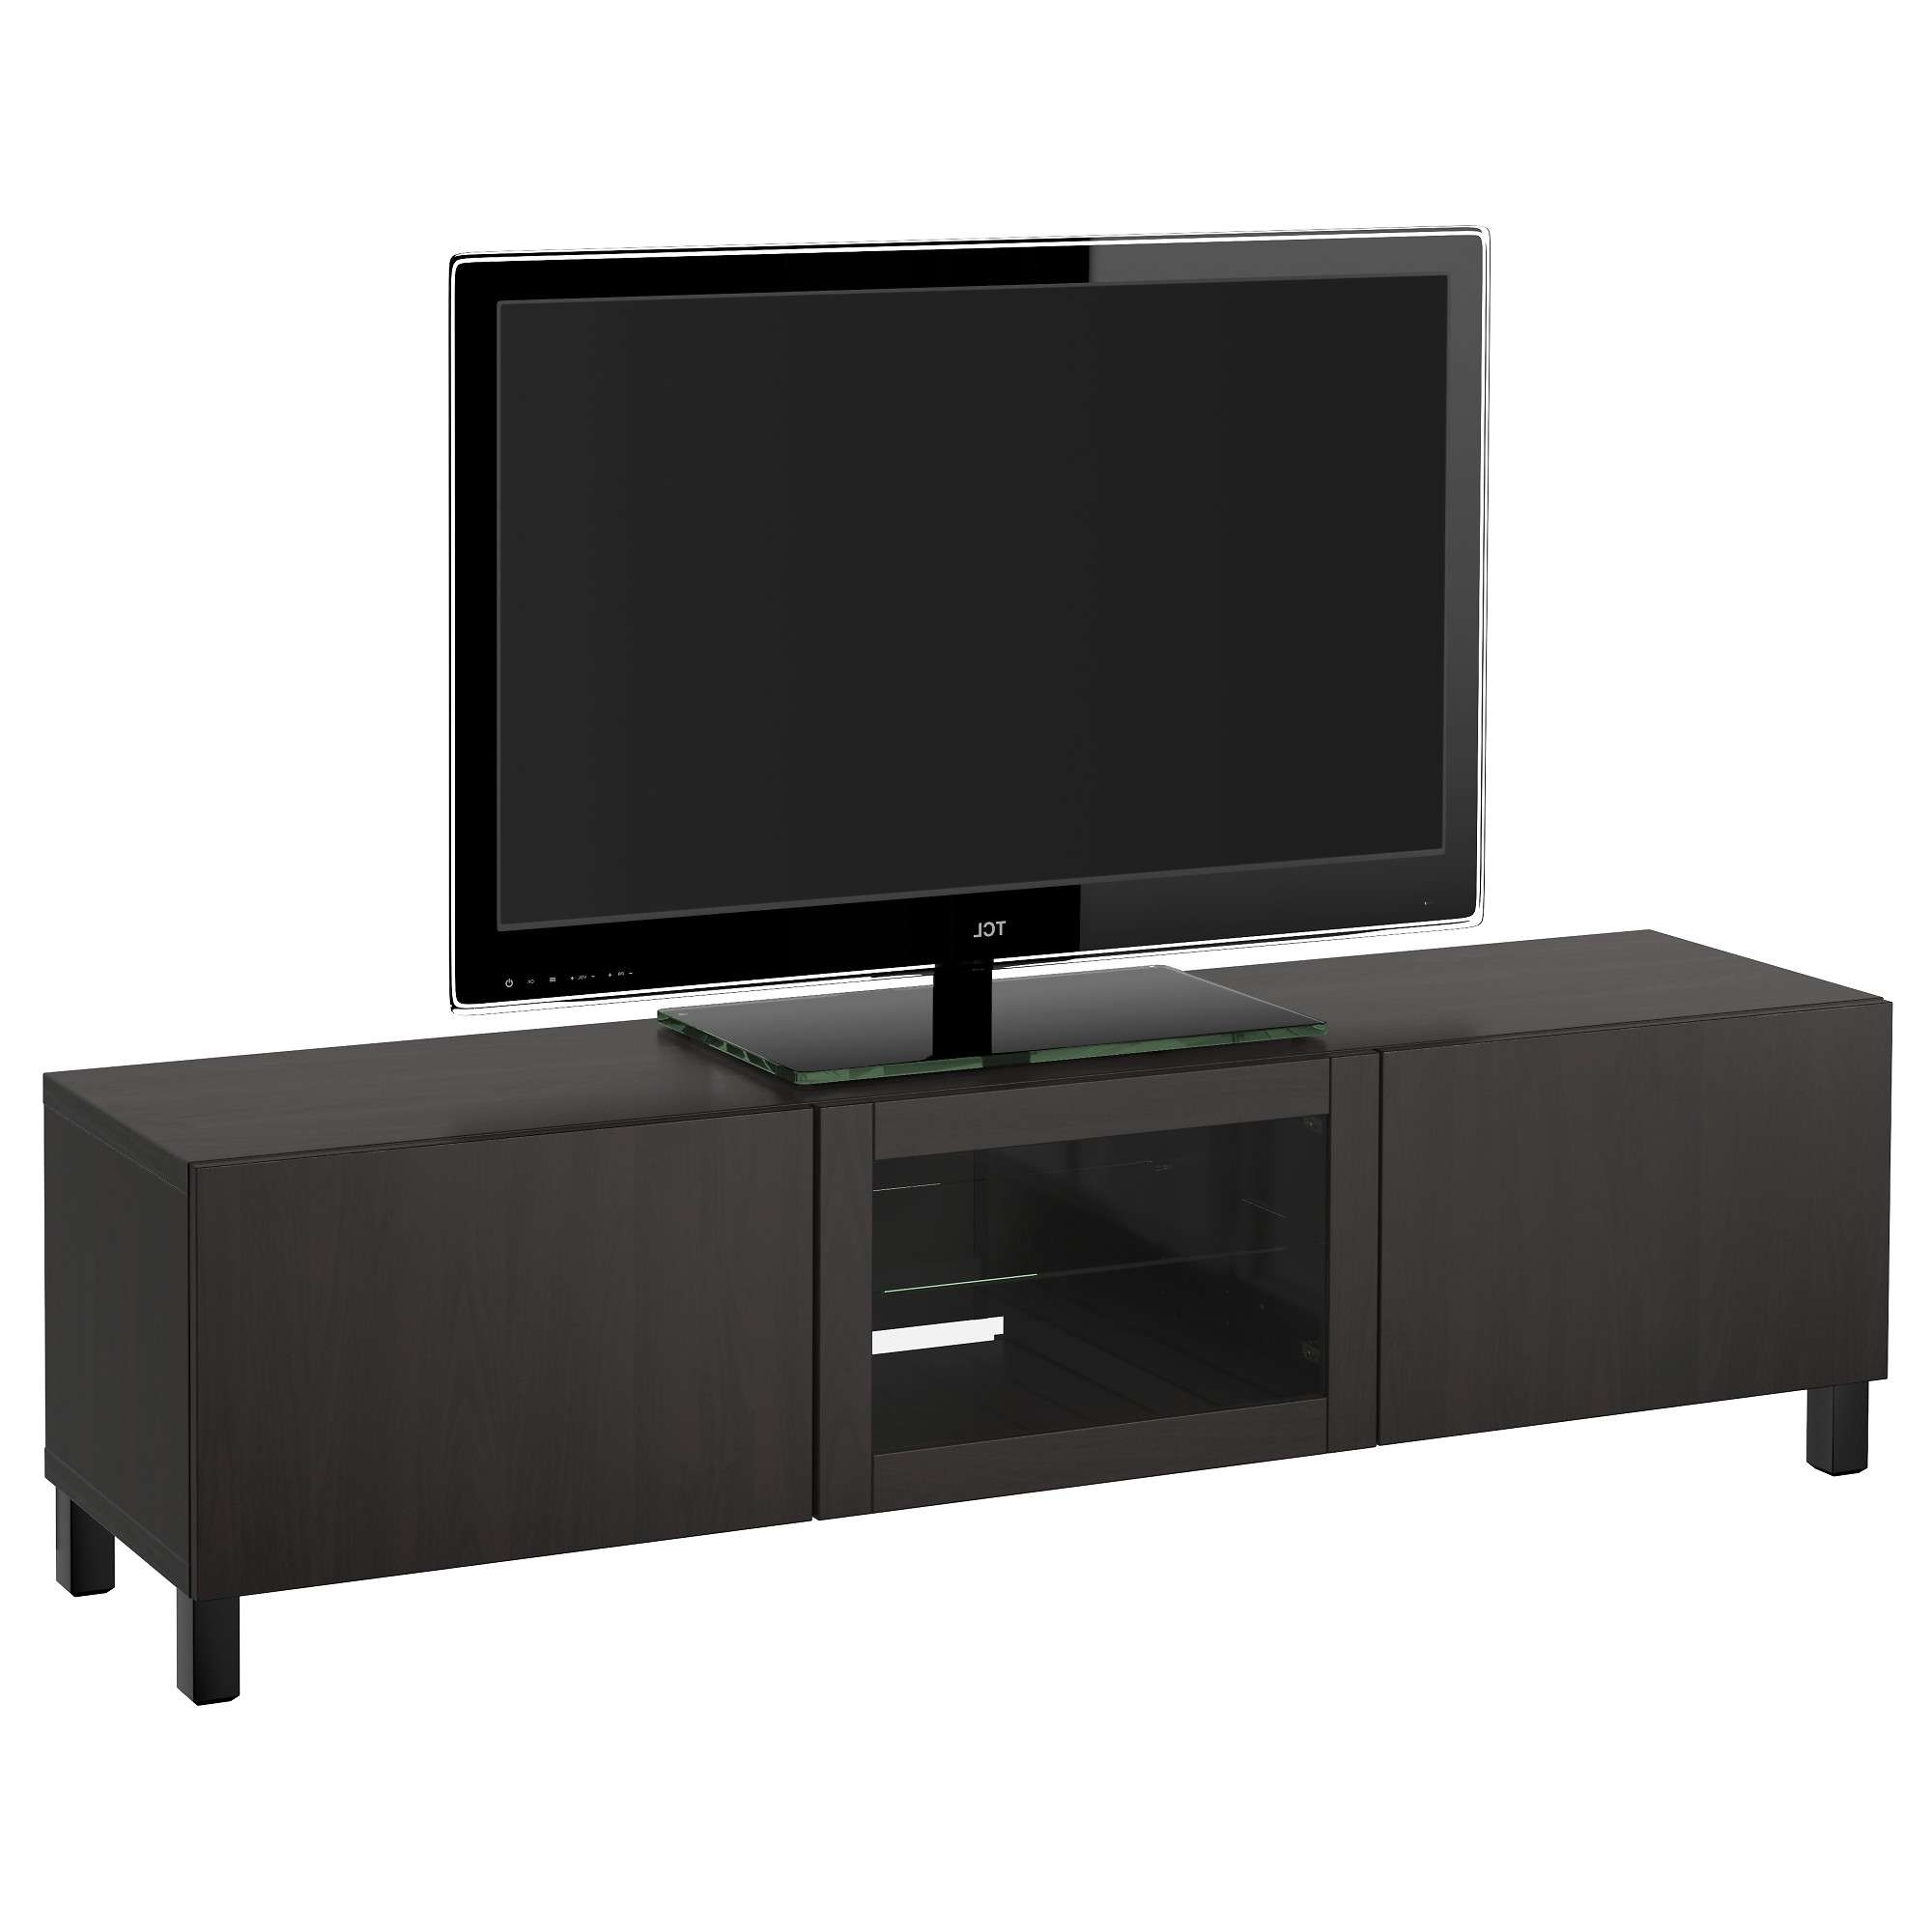 Tv Stands & Entertainment Centers – Ikea Regarding Black Tv Cabinets With Doors (View 18 of 20)